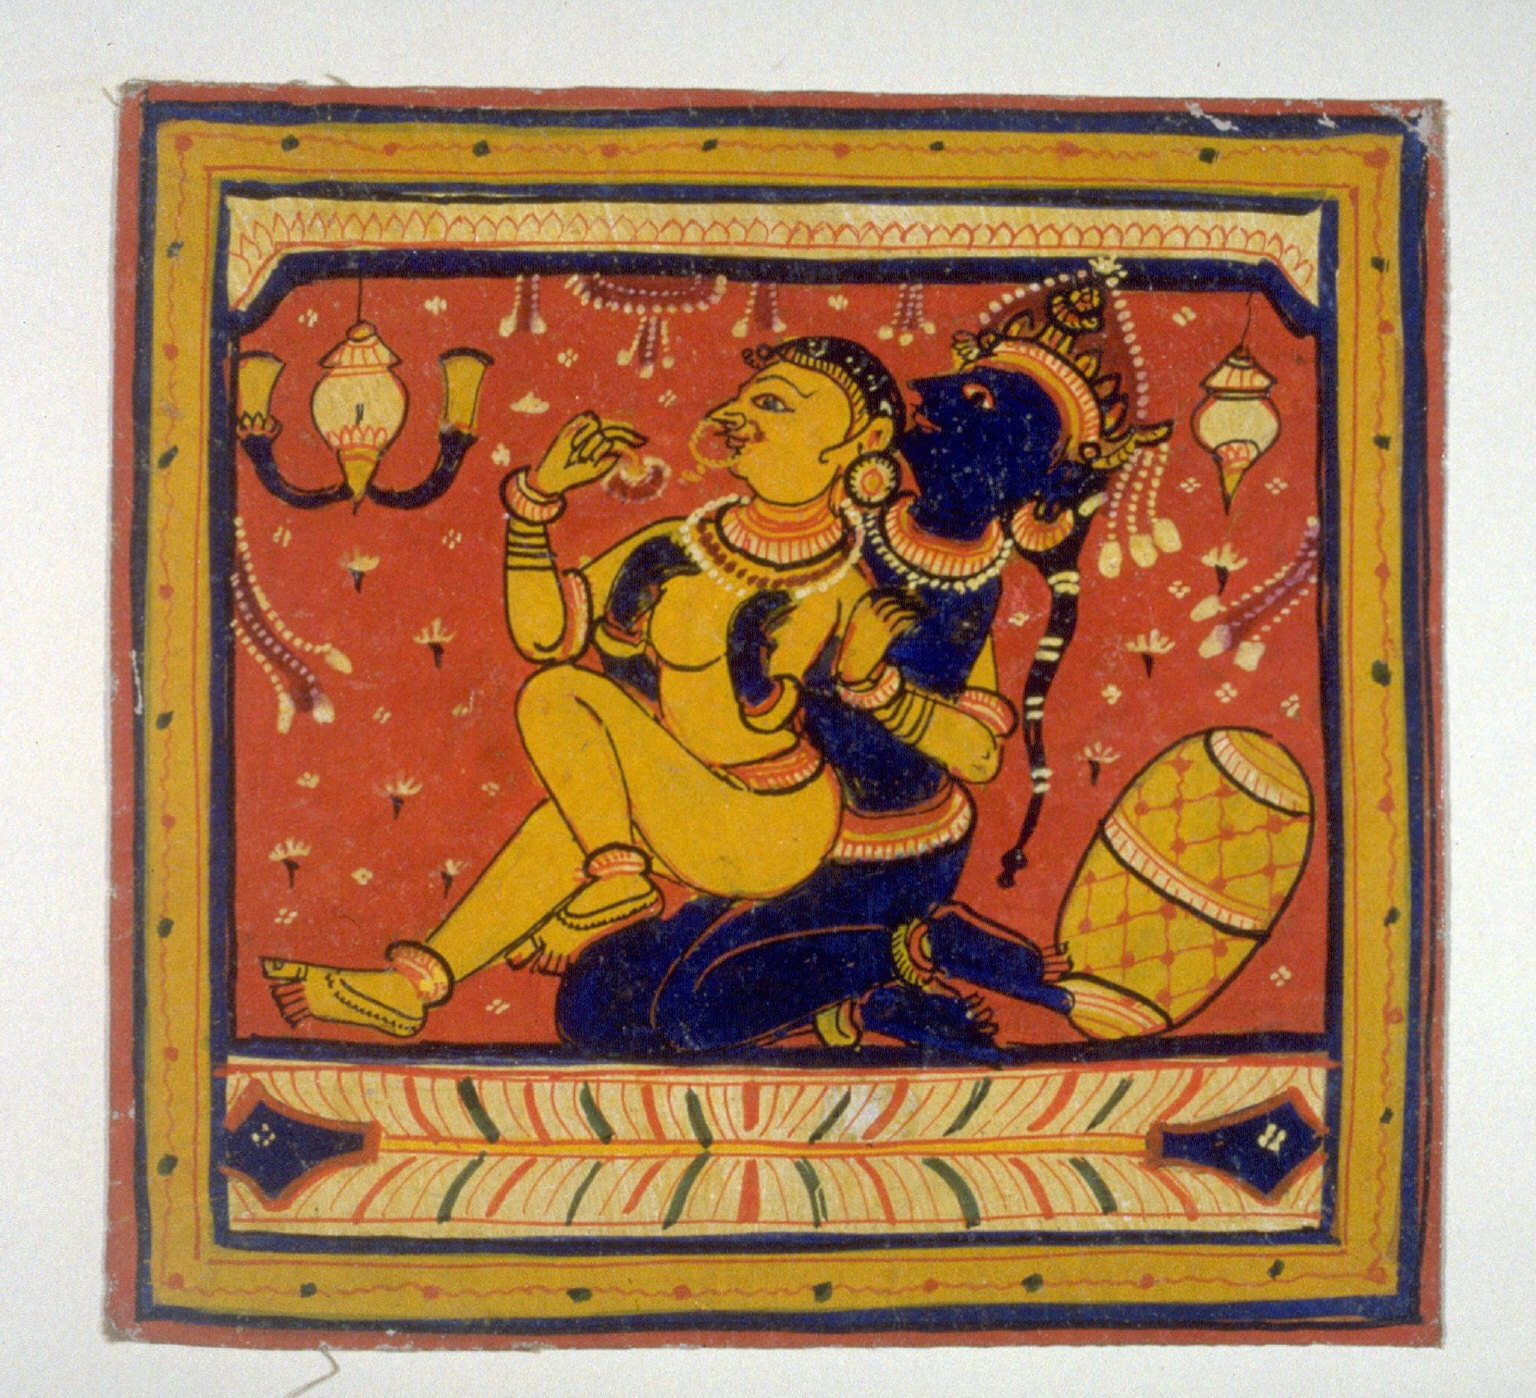 Krishna and a woman, from an unidentified series